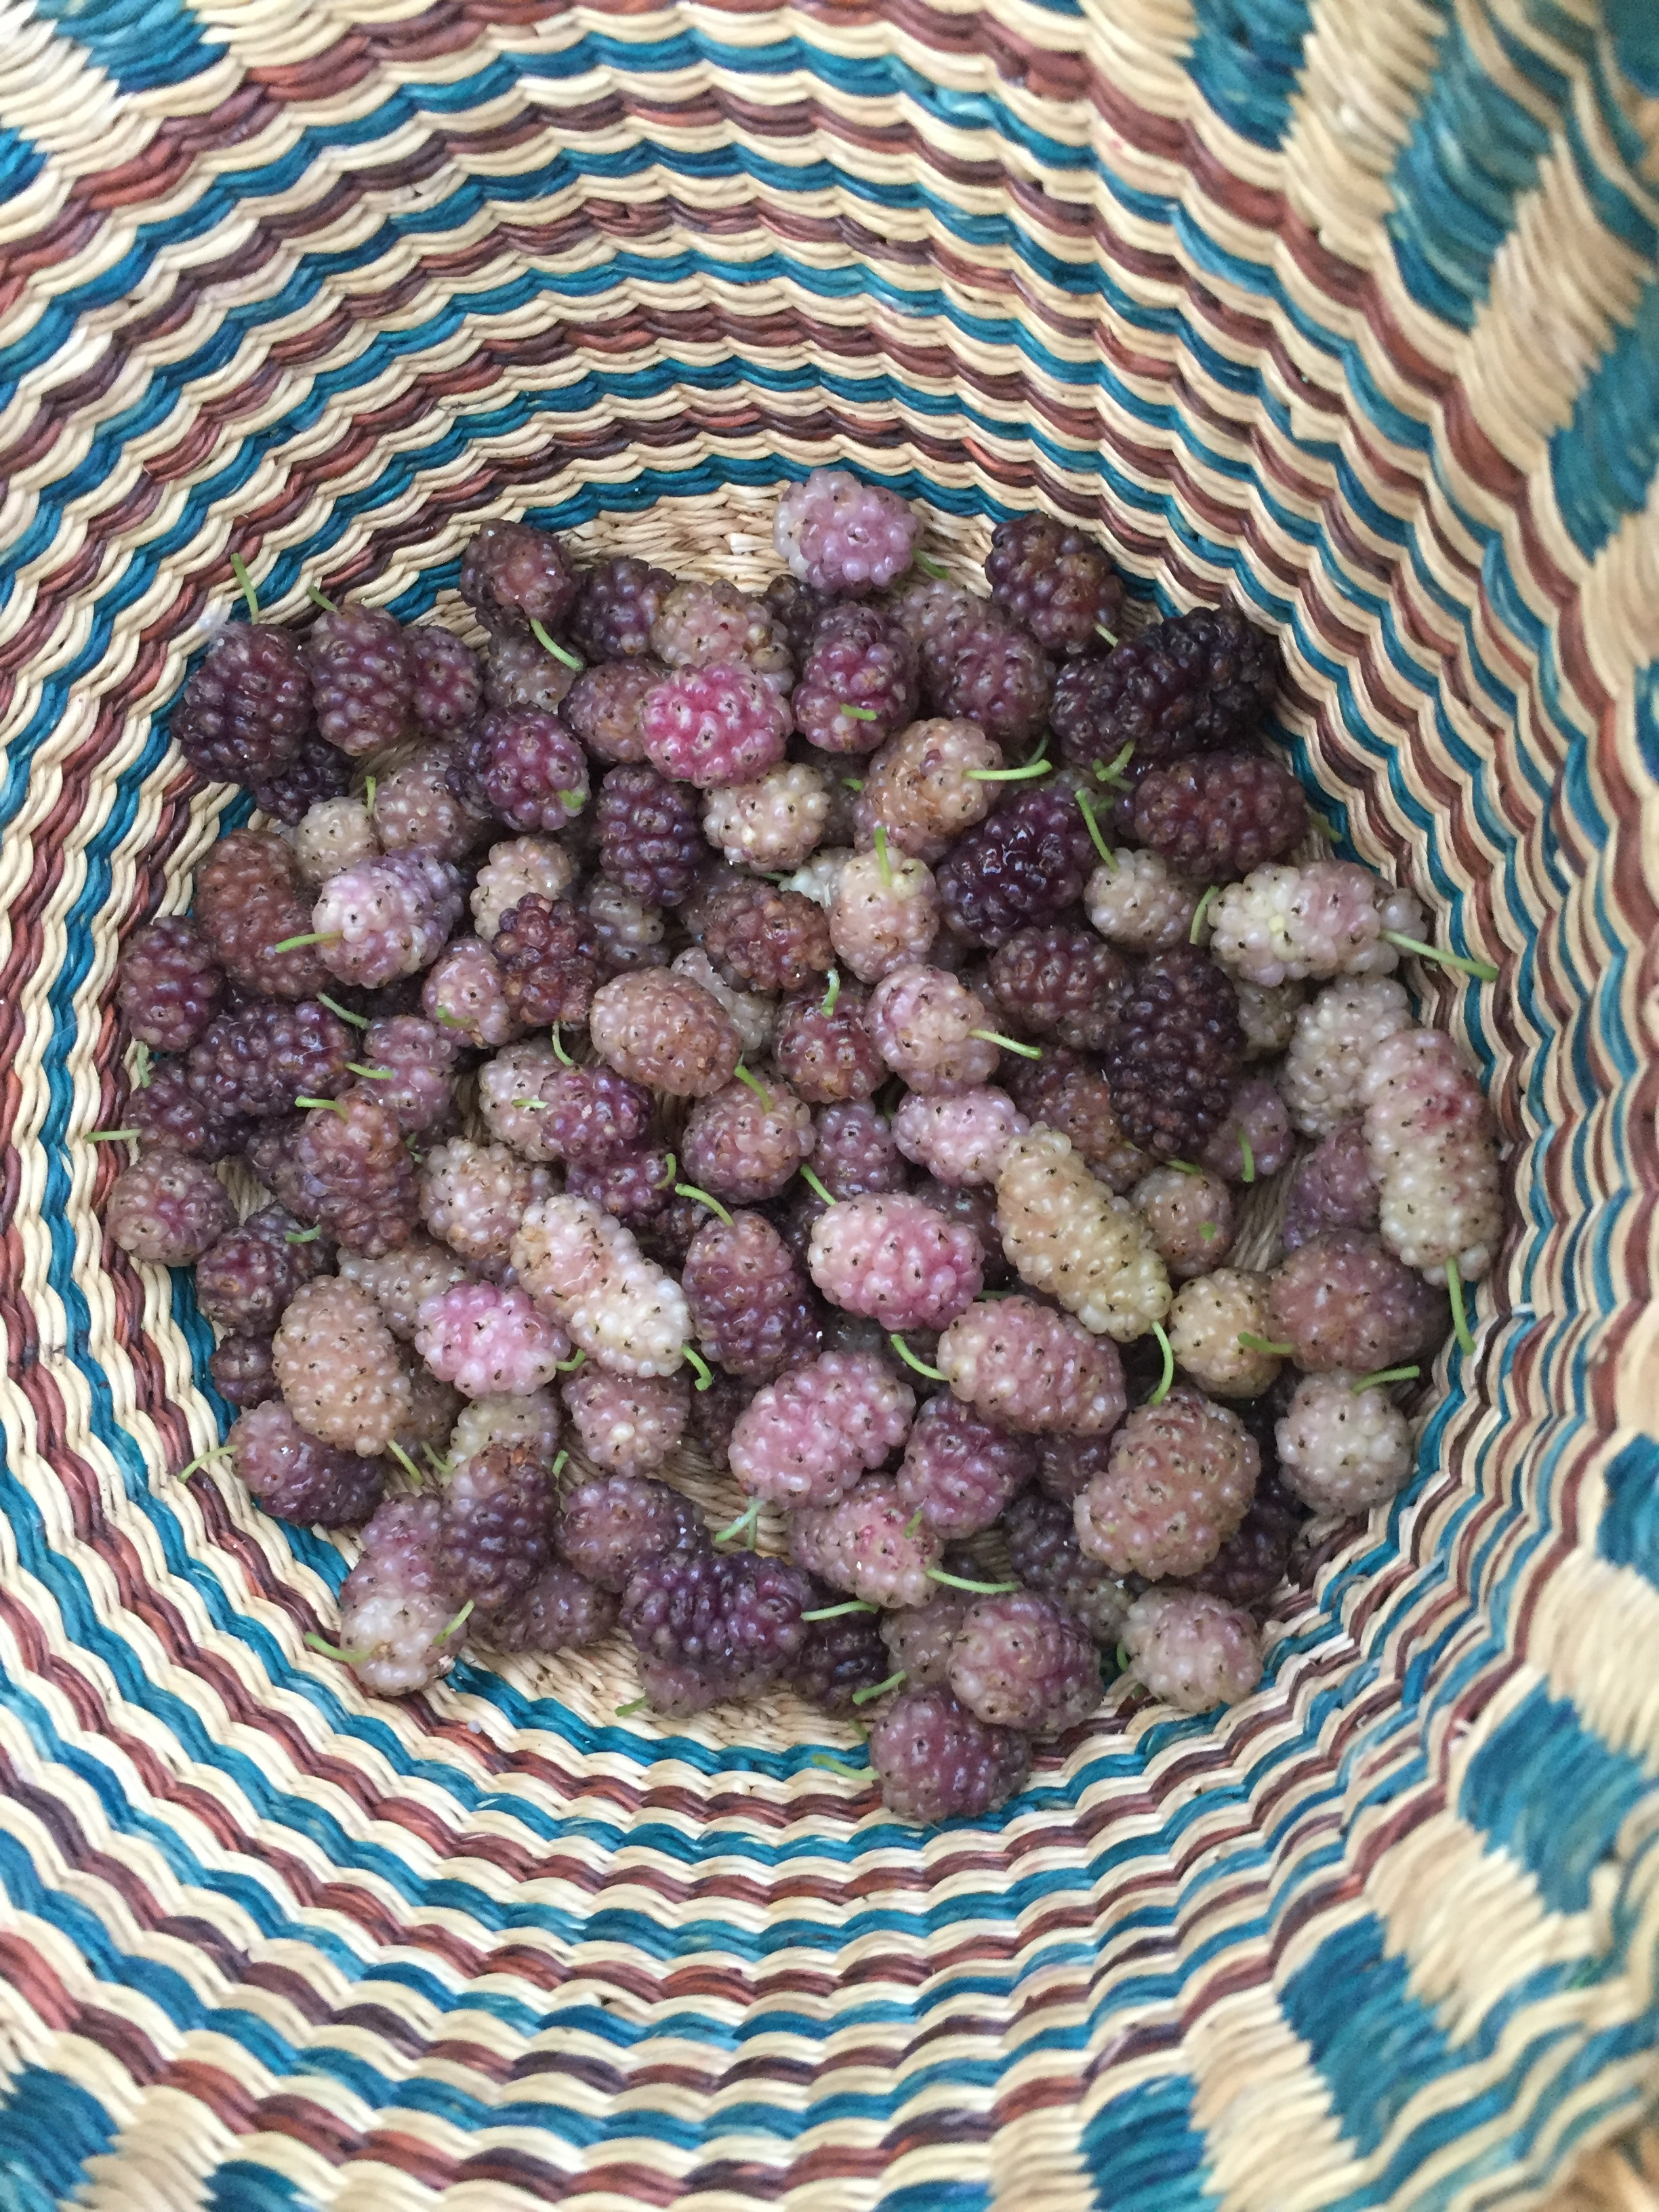 Truly white berries are not very common, and will often be rather bland unless tinted pink or purple.